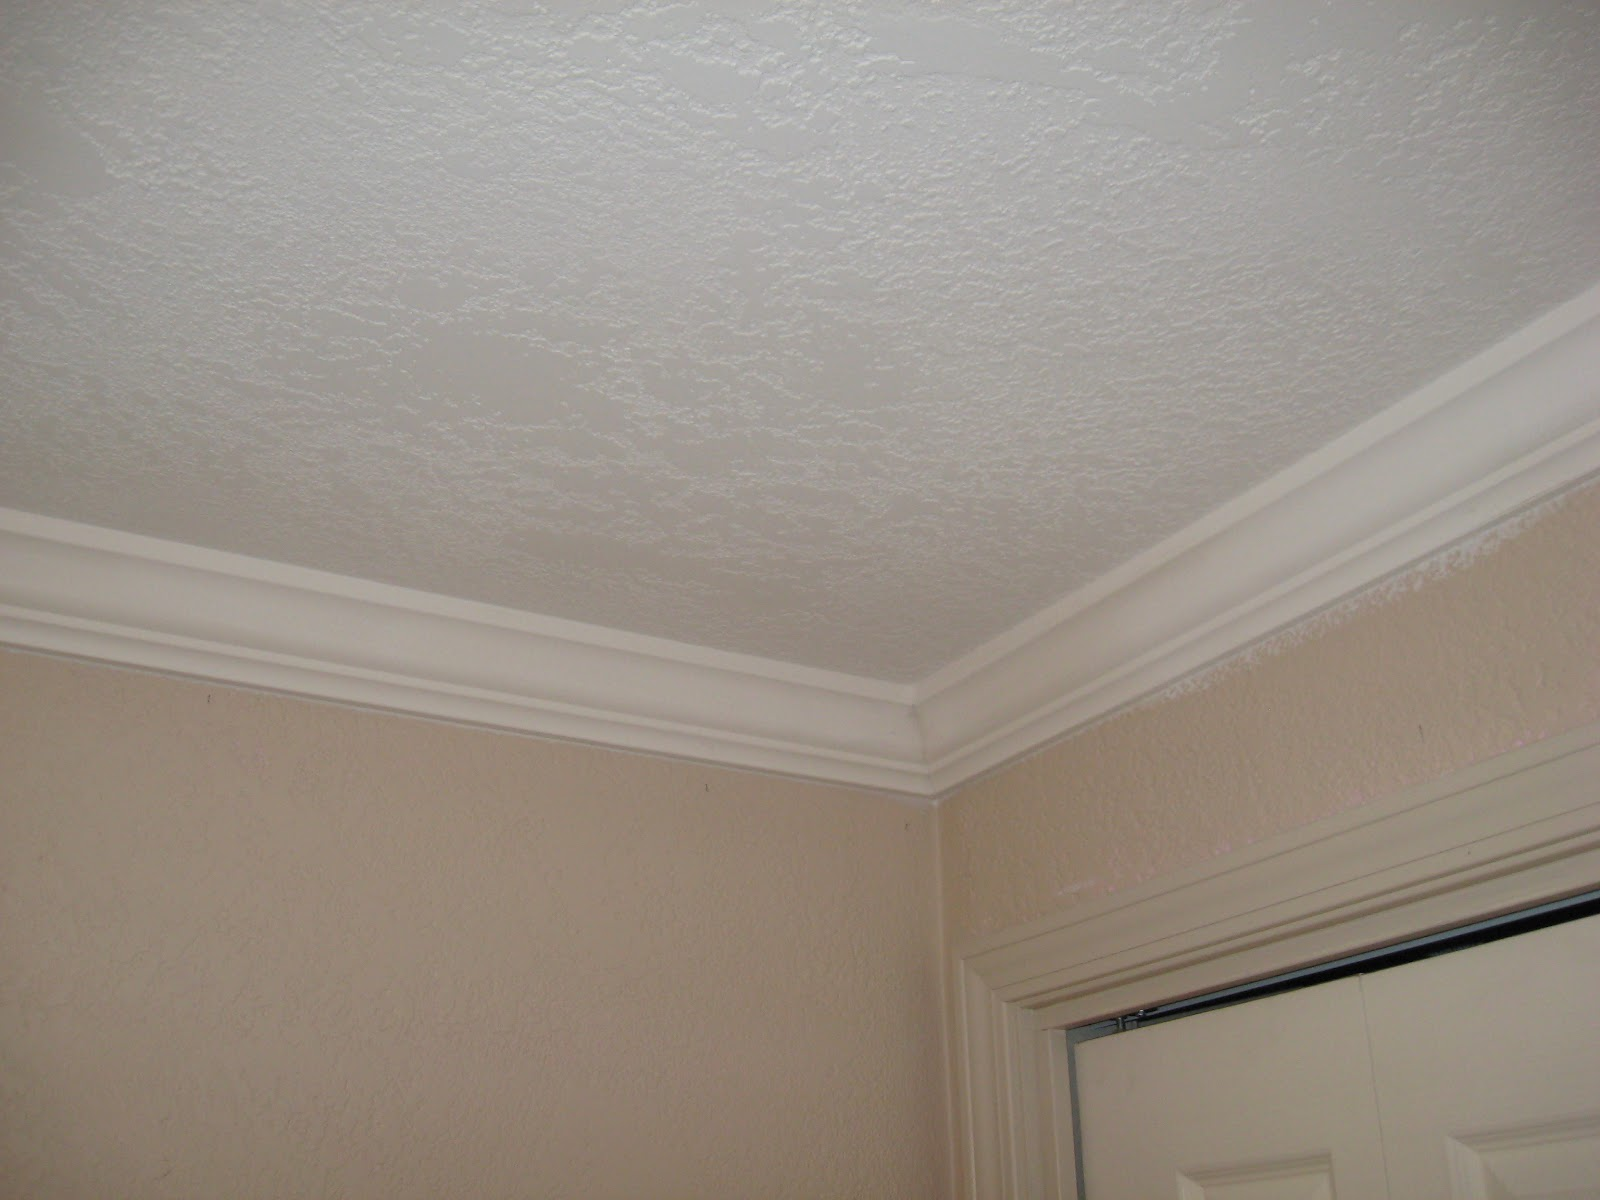 Bedroom Ceiling Moulding Dwell Concepts